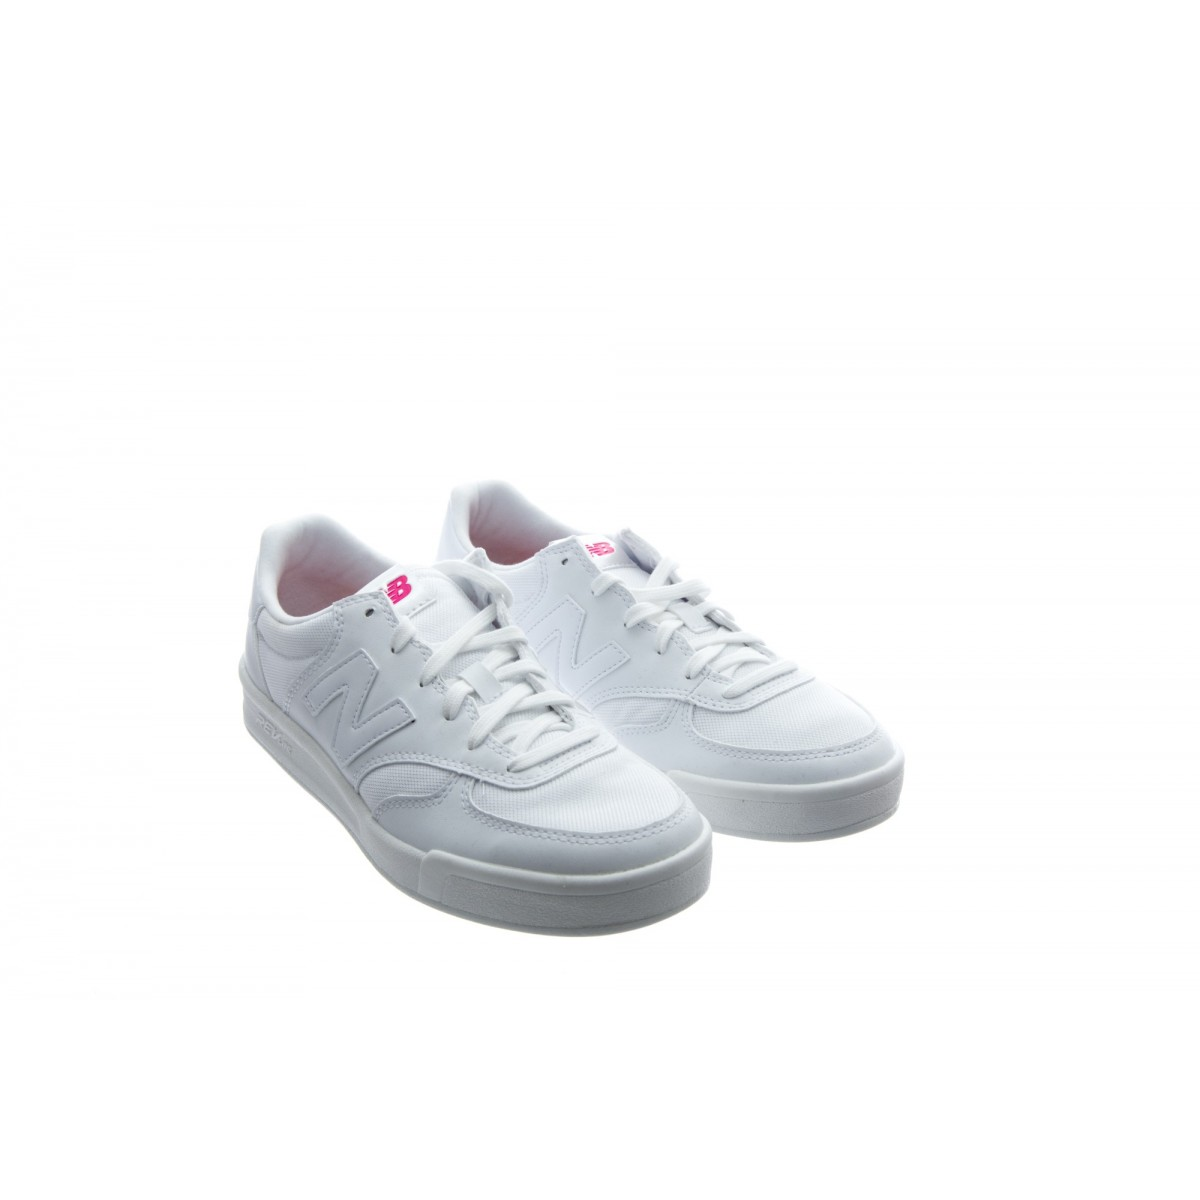 Scarpe - Wrt300 tennis retro